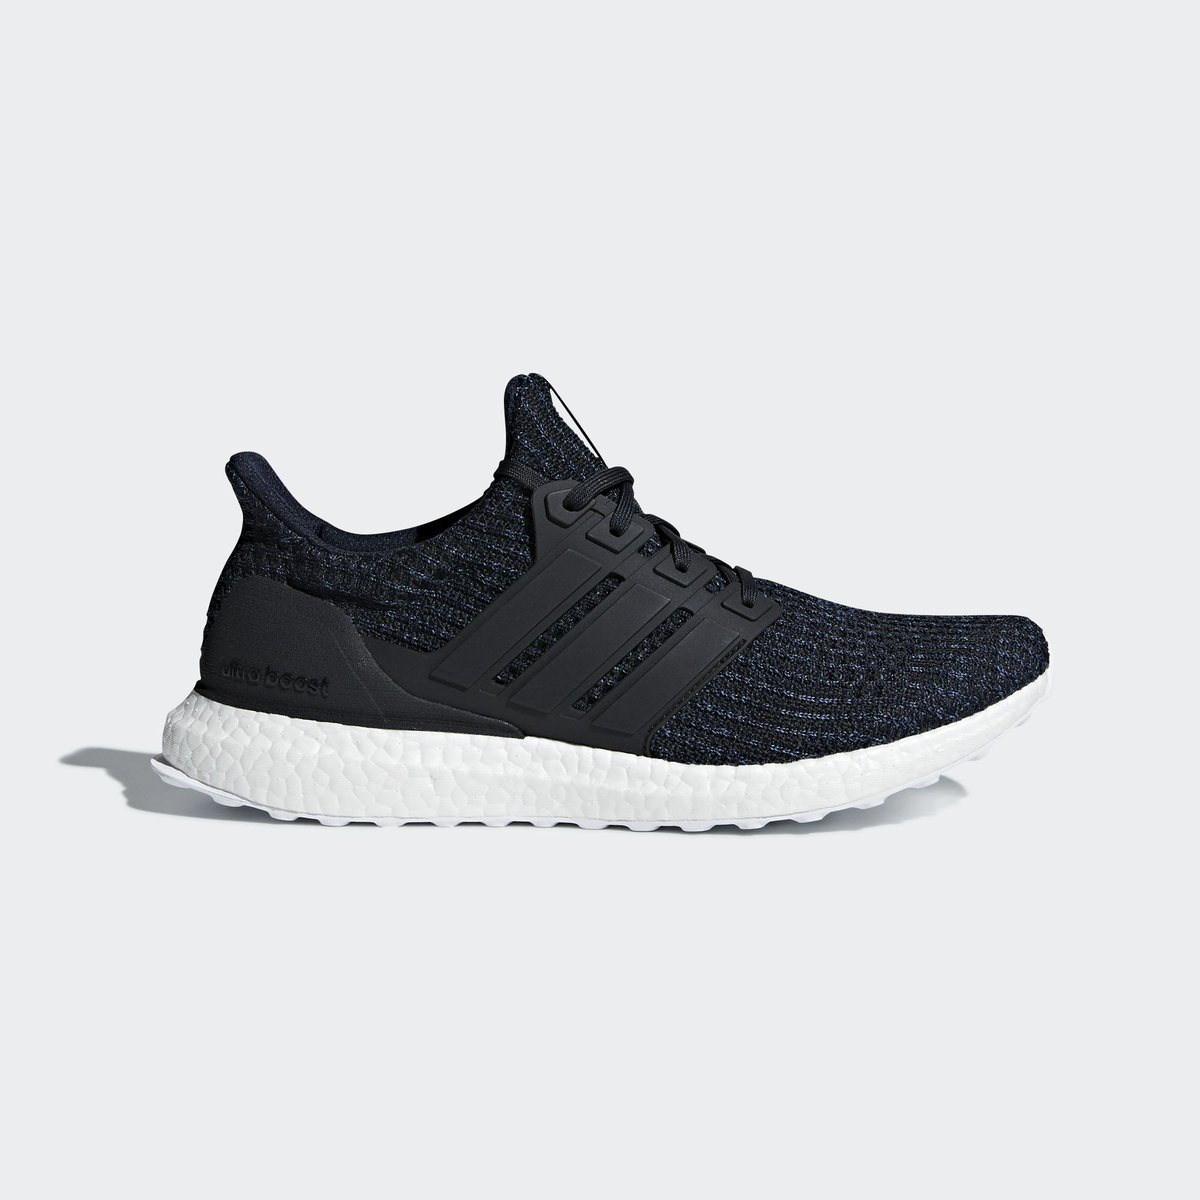 e49a33ae1 ... Ocean Blue and Cloud White alongside new colorways of the Parley Ultra  Boost Laceless and Ultra Boost X